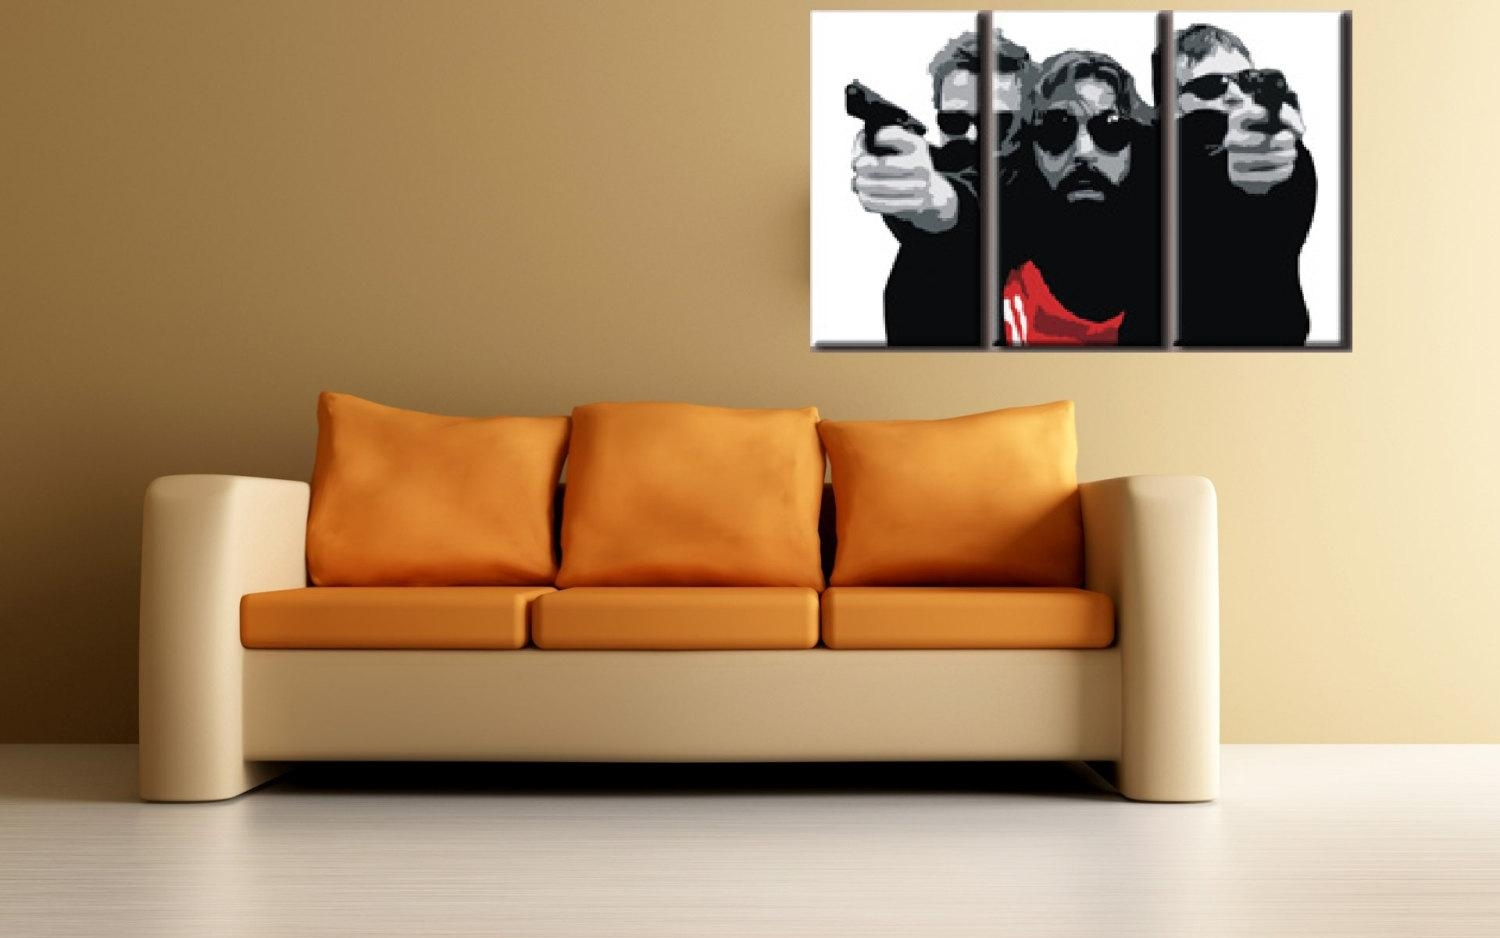 Boondock Saints Hand Painted Canvas Acrylic Pop Art Oil Inside Boondock Saints Wall Art (View 6 of 20)